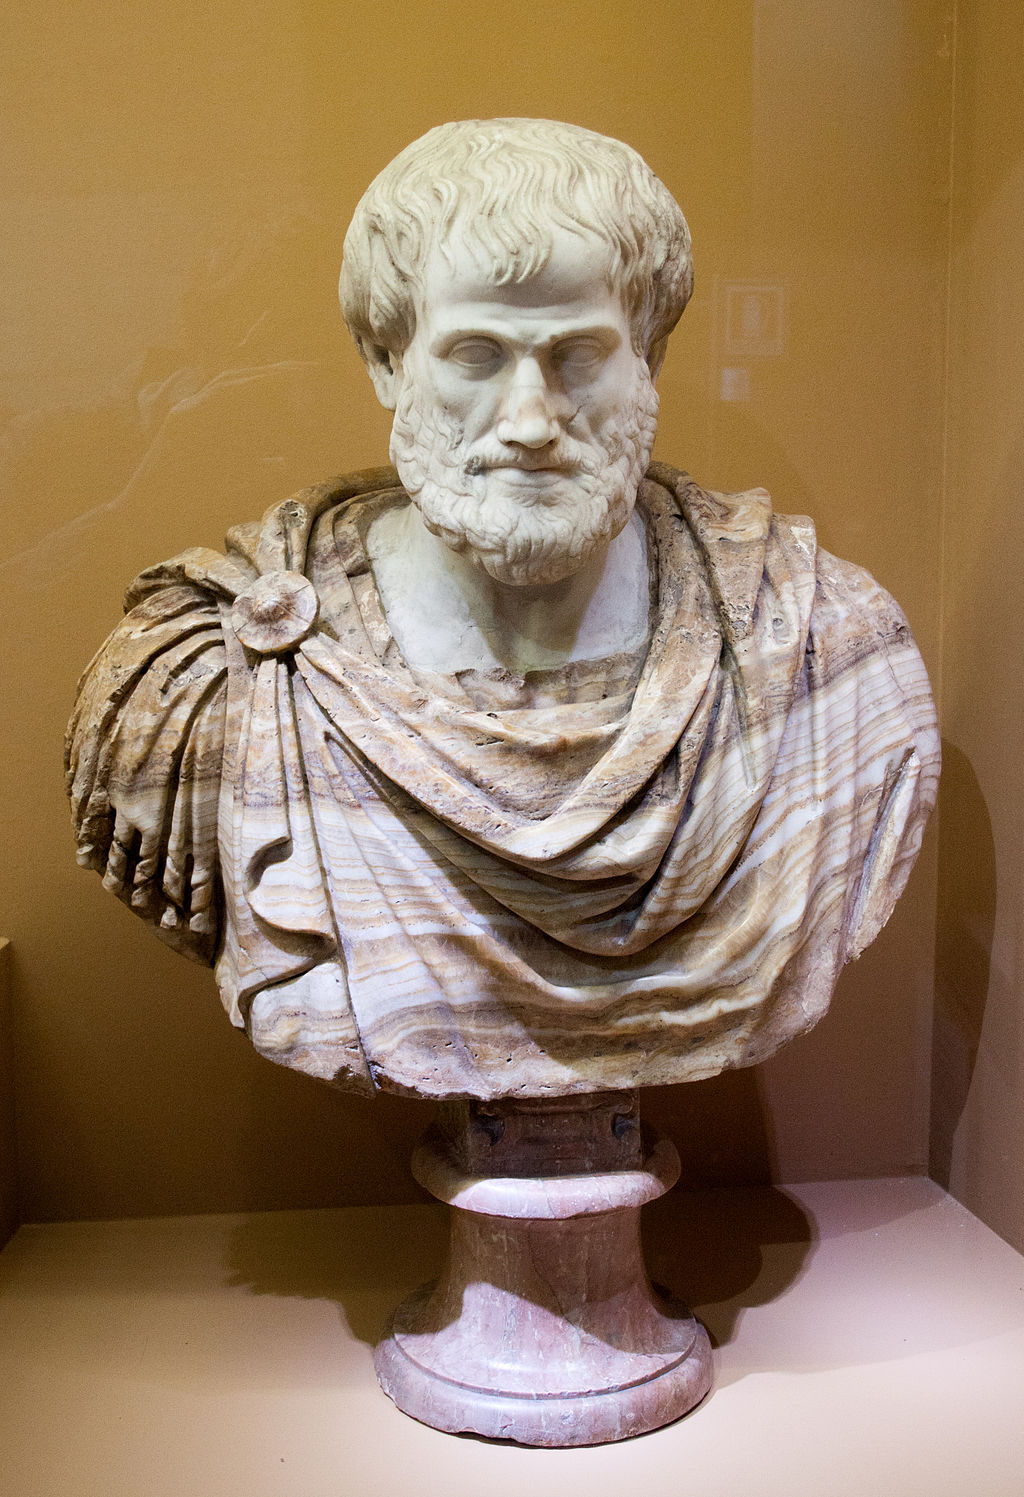 Bust of Aristotle. Marble, Roman copy after a Greek bronze original by  Lysippos  from 330 BC; the alabaster mantle is a modern addition (Wikimedia Commons)